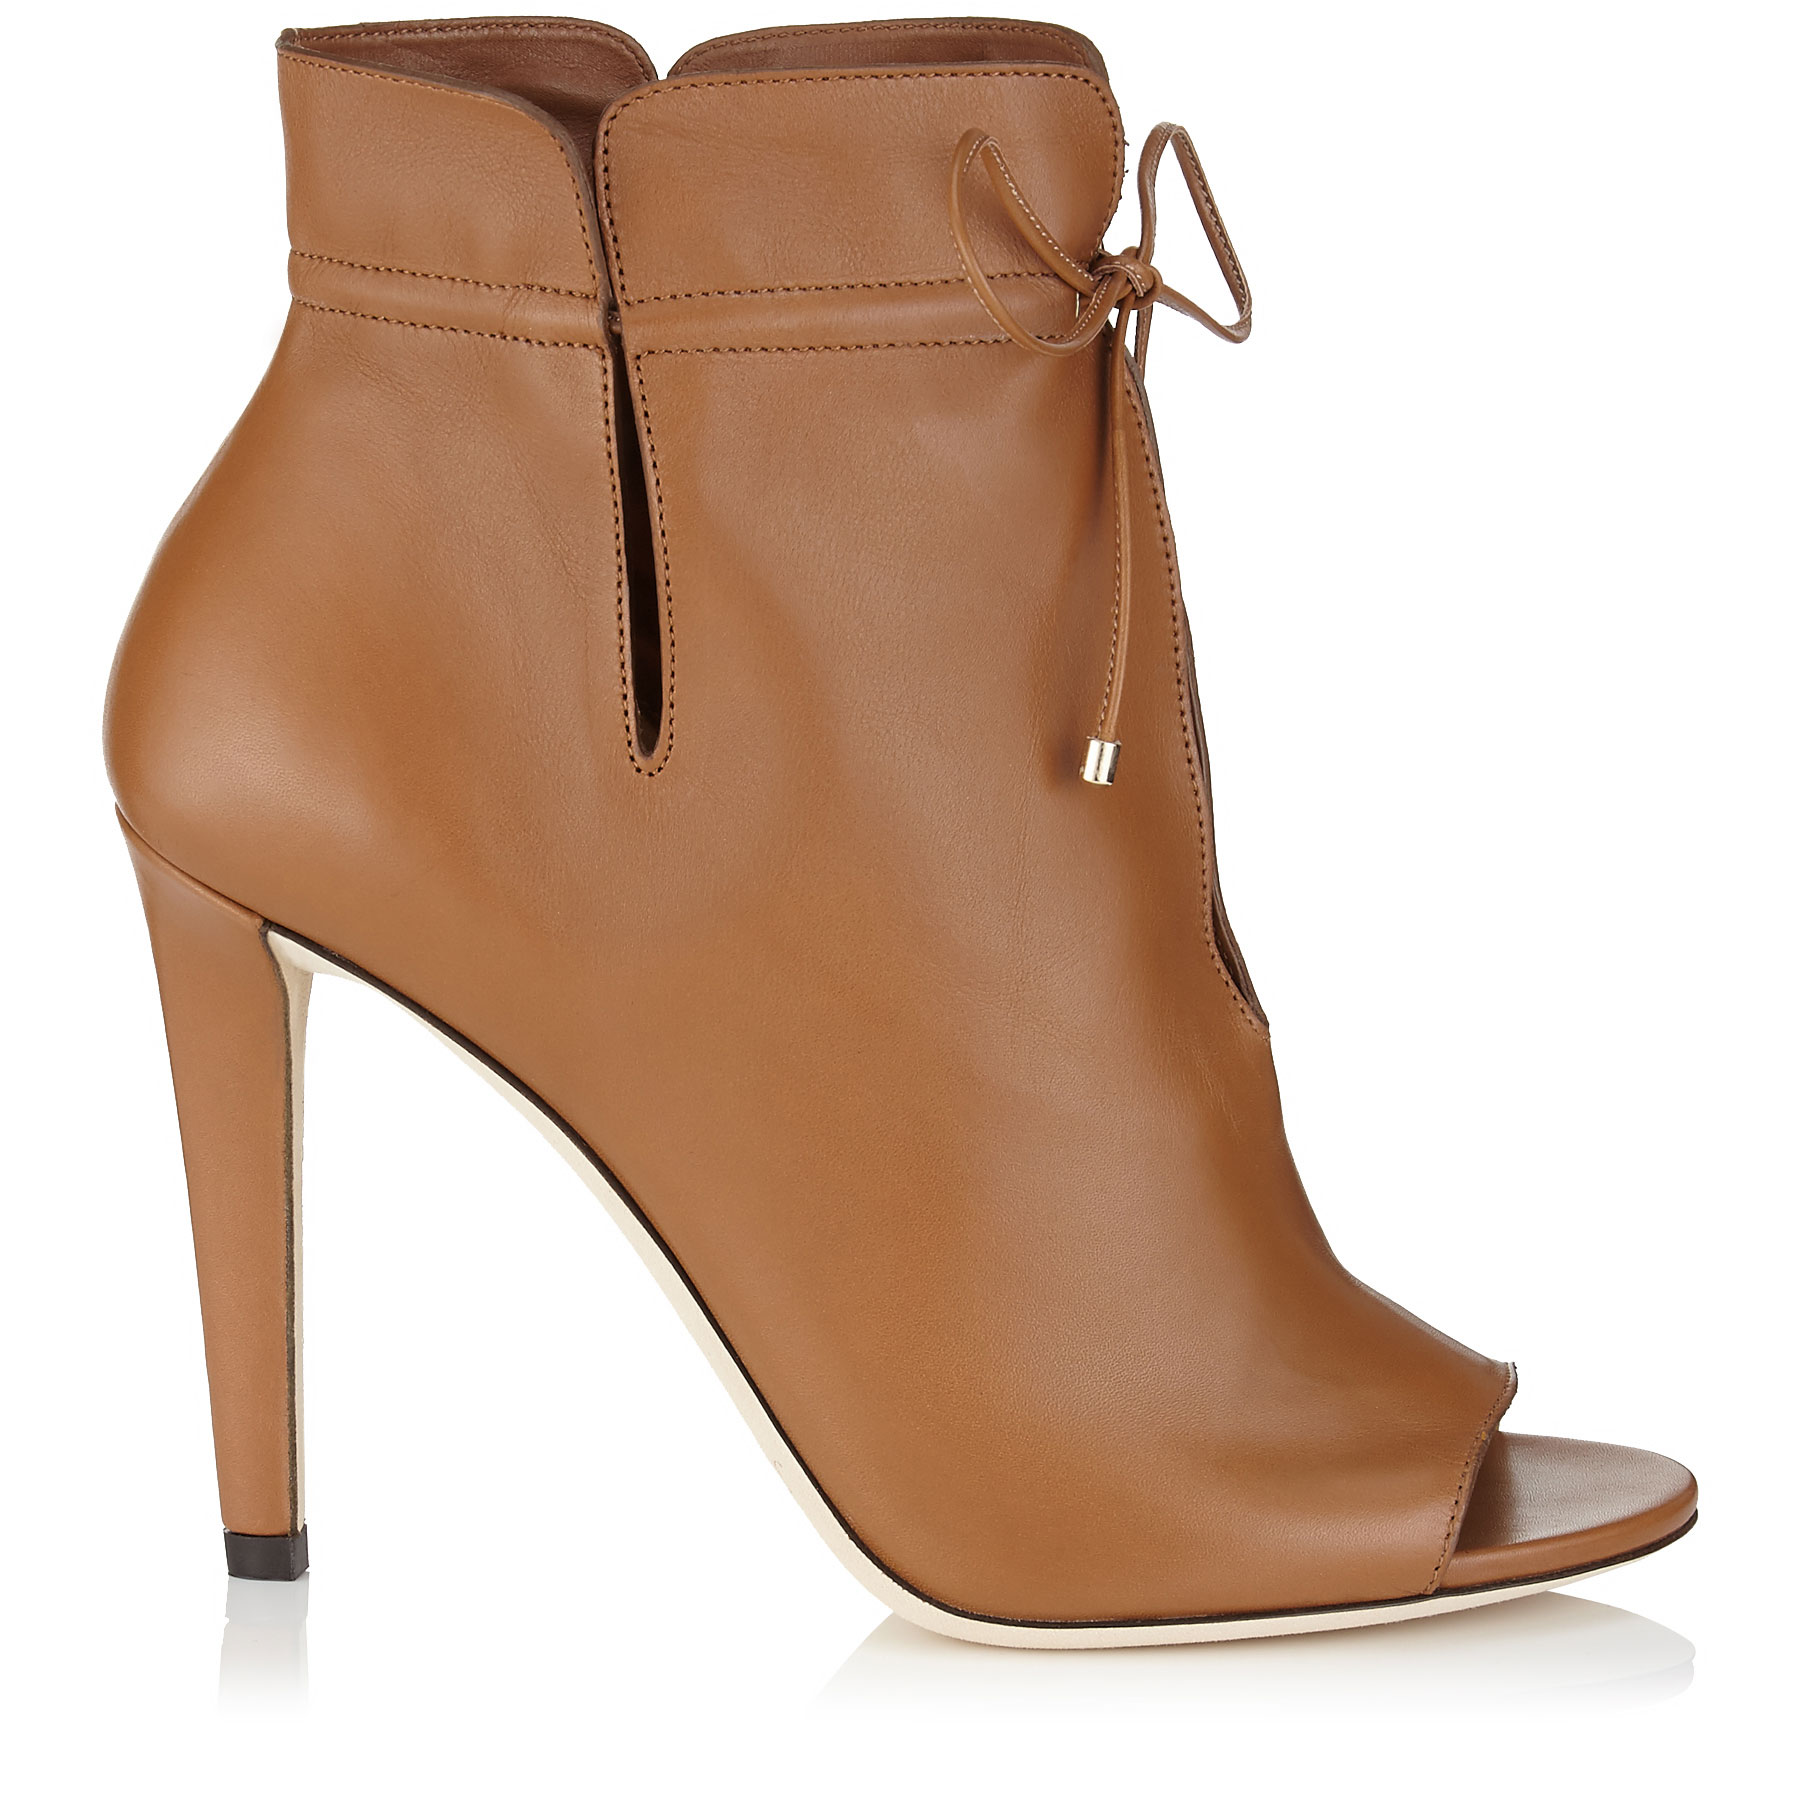 MEMPHIS 100 Canyon Soft Leather Ankle Booties